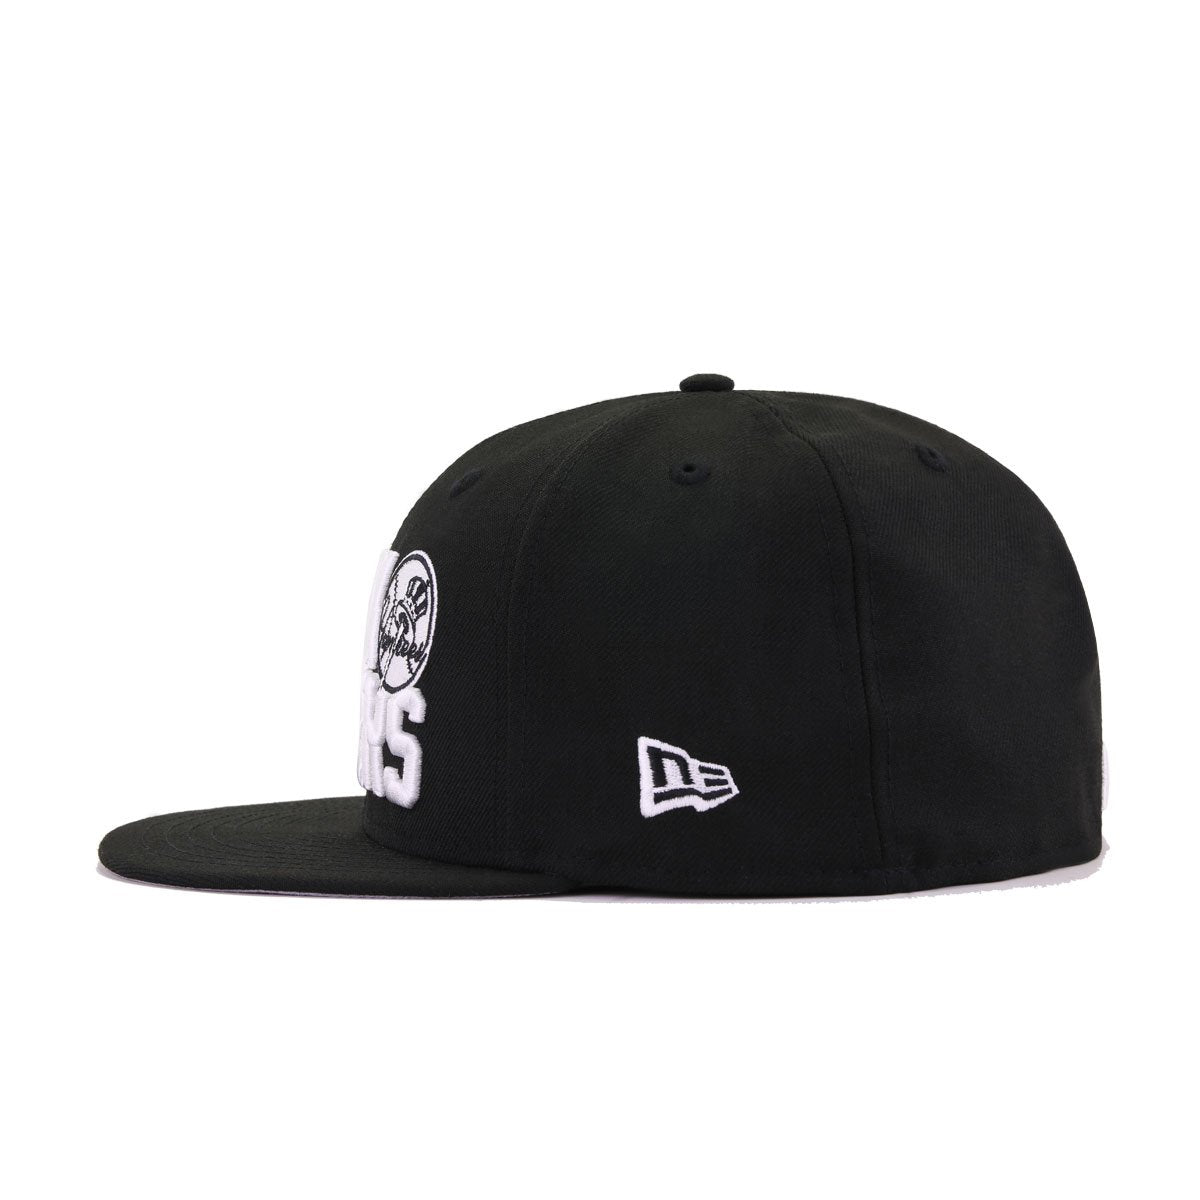 New York Yankees Black Bronx Bombers New Era 59Fifty Fitted